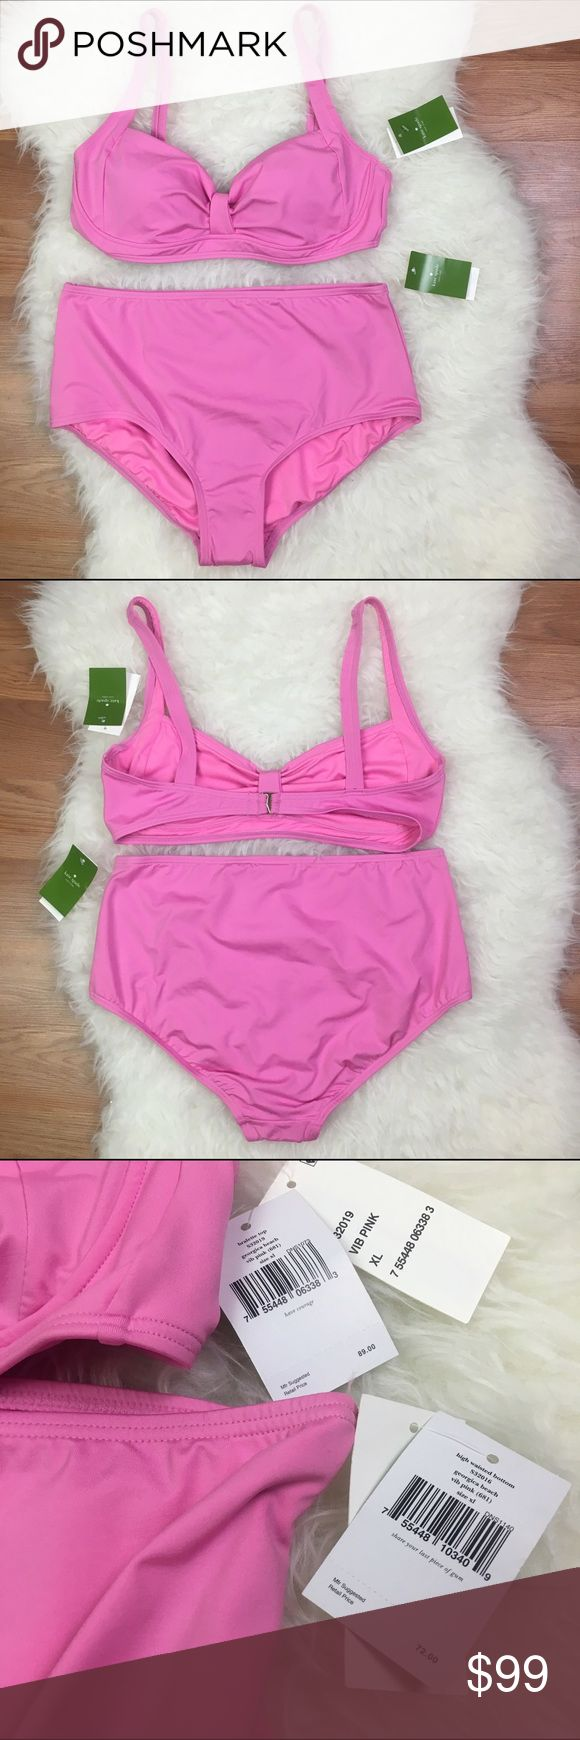 kate spade Pink High Waisted Bikini. Adorable pink high waisted swimsuit with bralette top from kate spade. Liner attached. Top does not having any padding. kate spade Swim Bikinis